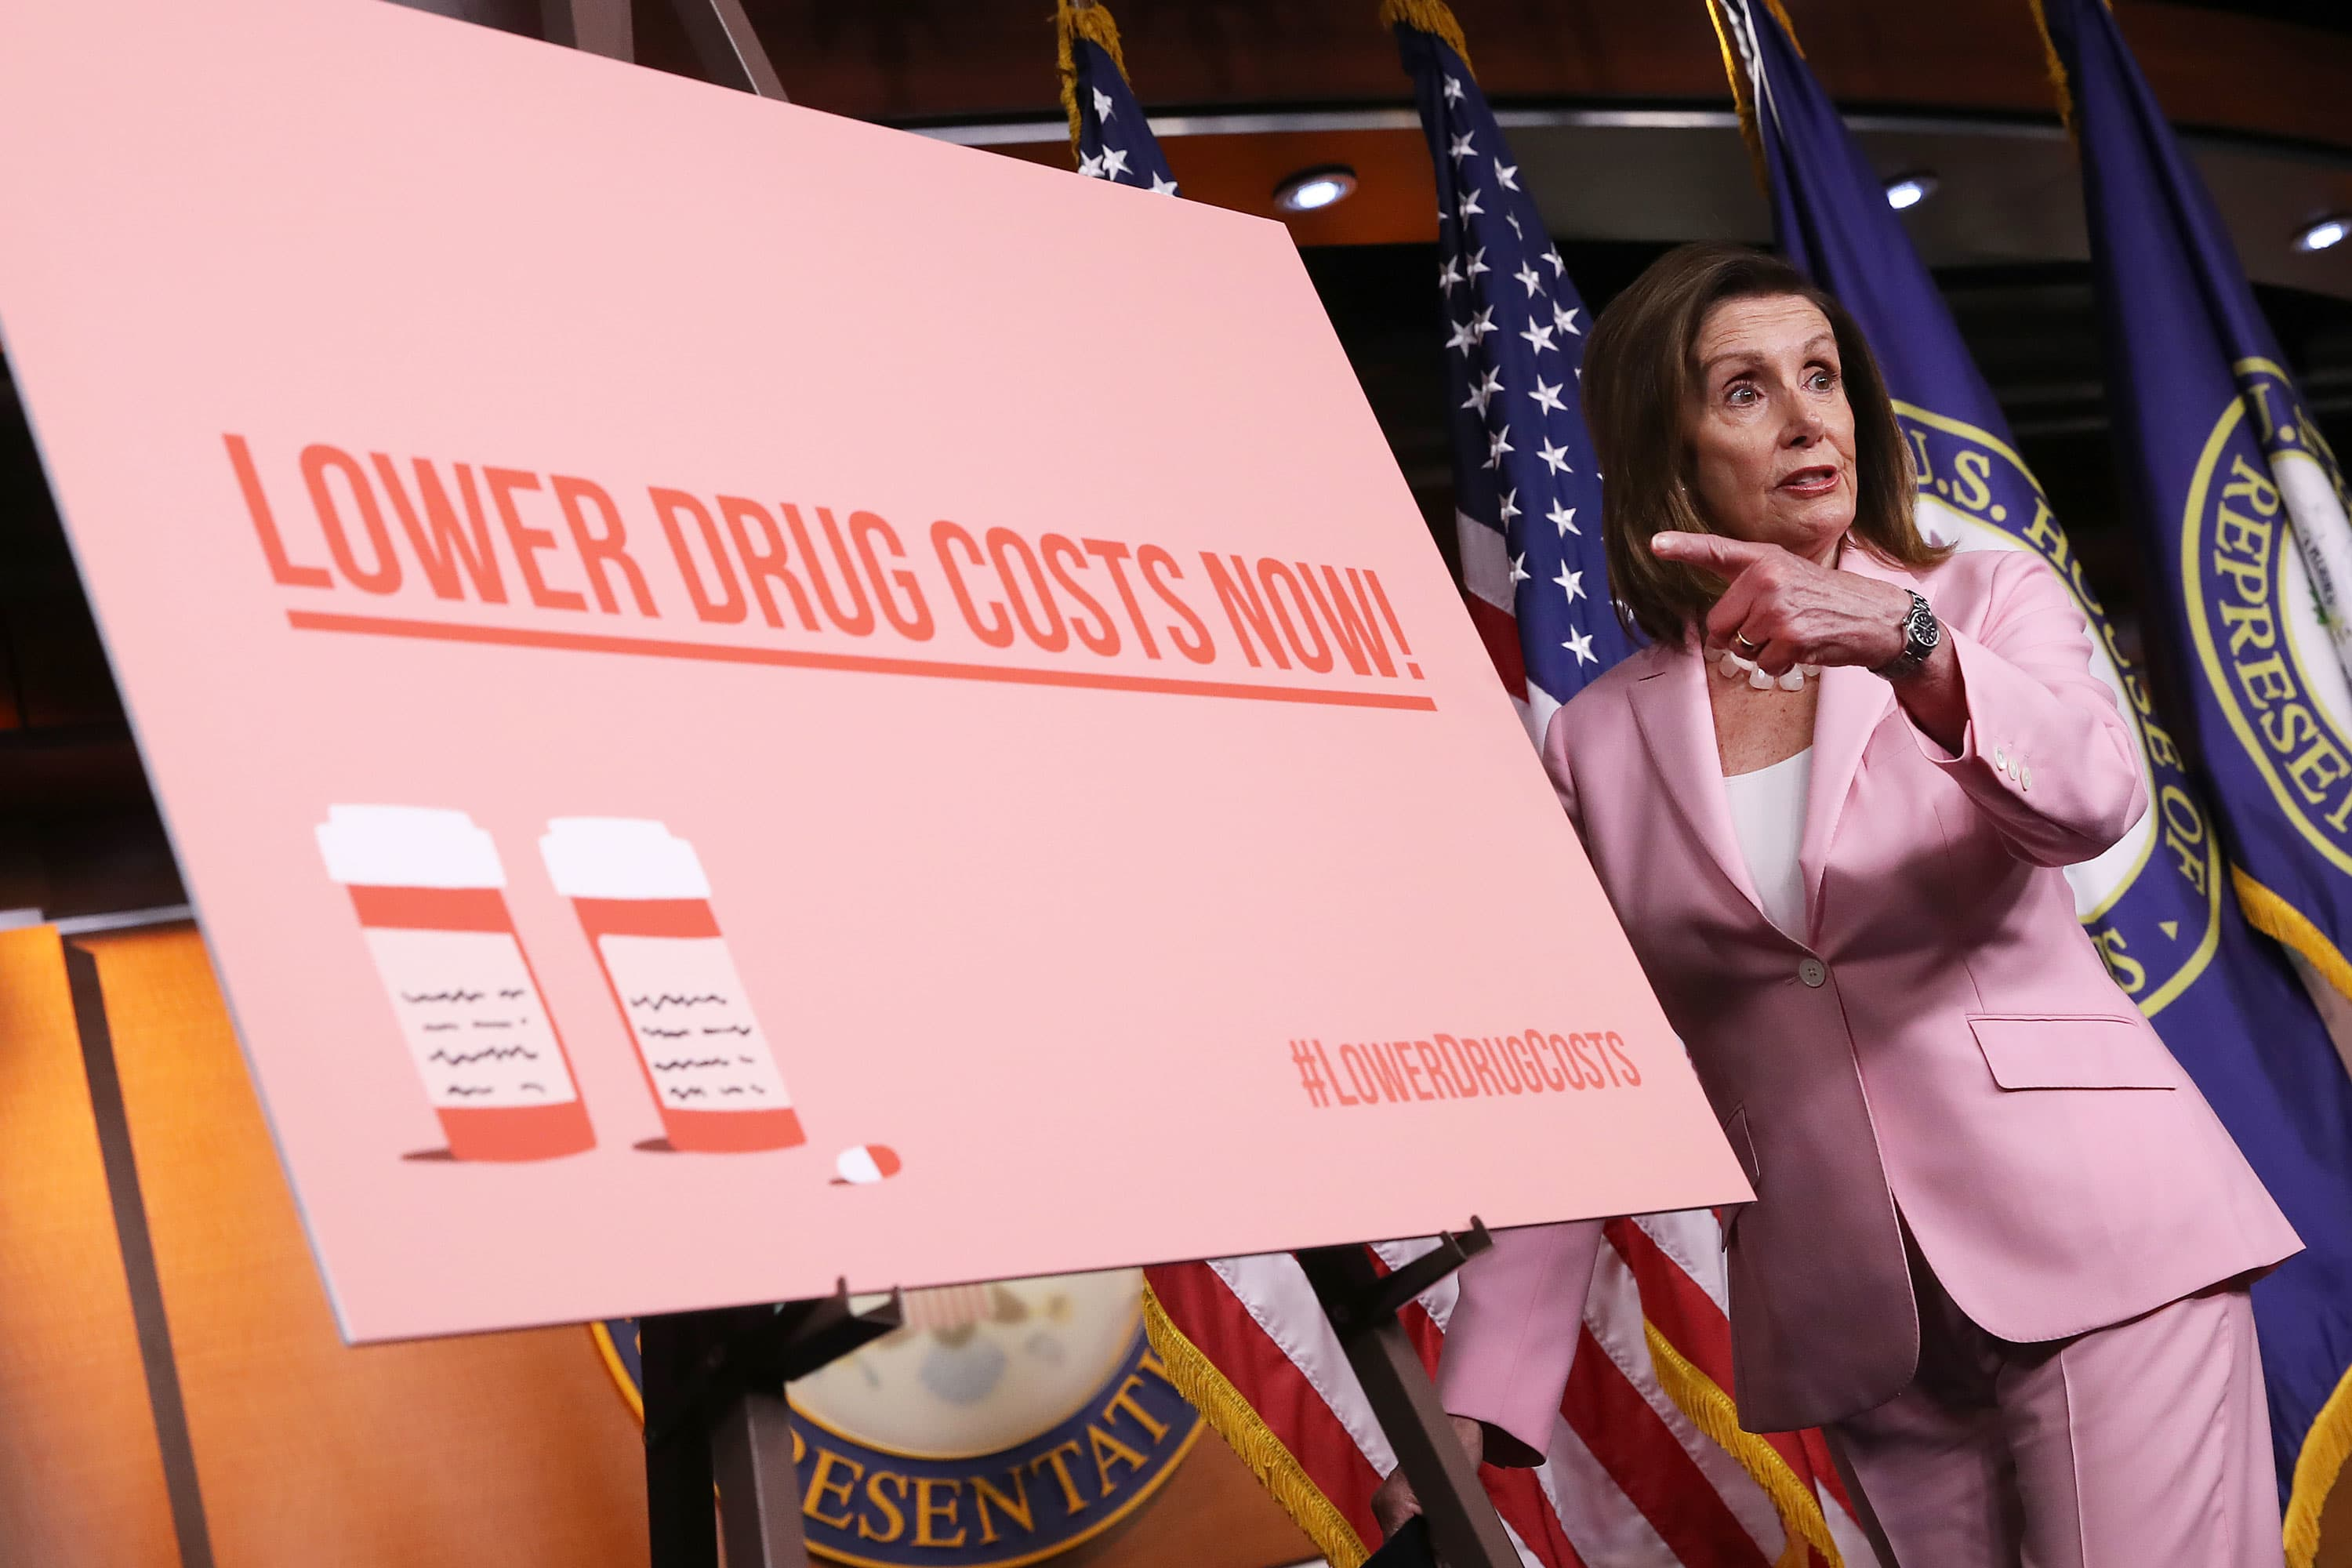 Pelosi agrees to expand drug price bill to win support from AOC, other Democrats